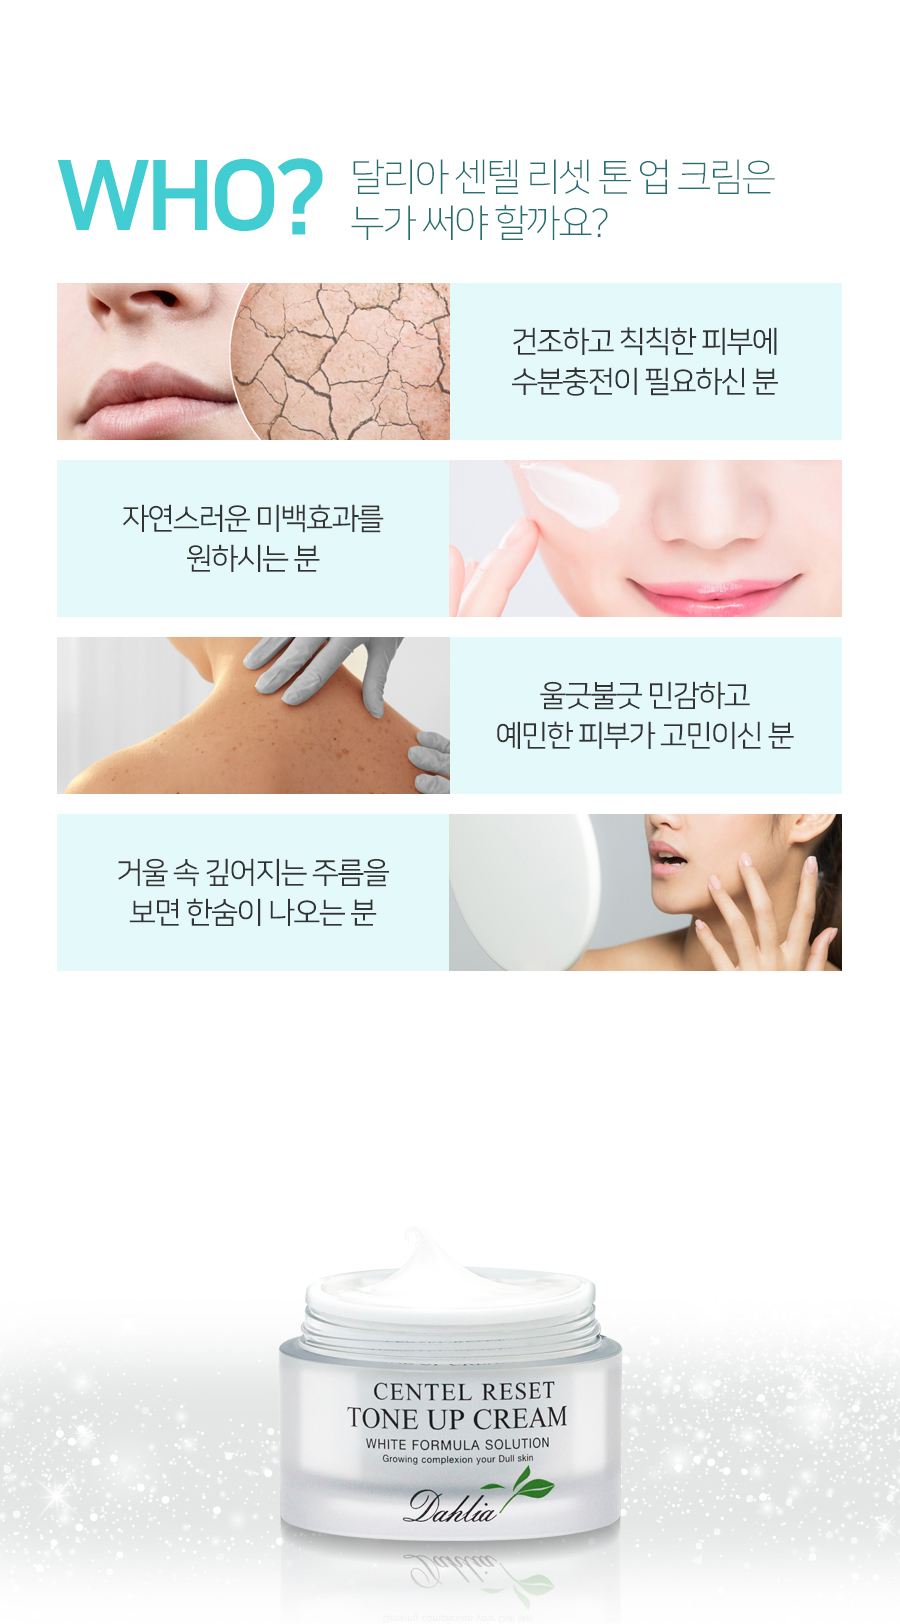 korean_cosmetic_tone_up_cream_base_makeup_Dahlia_centel_Reset_Cream 03